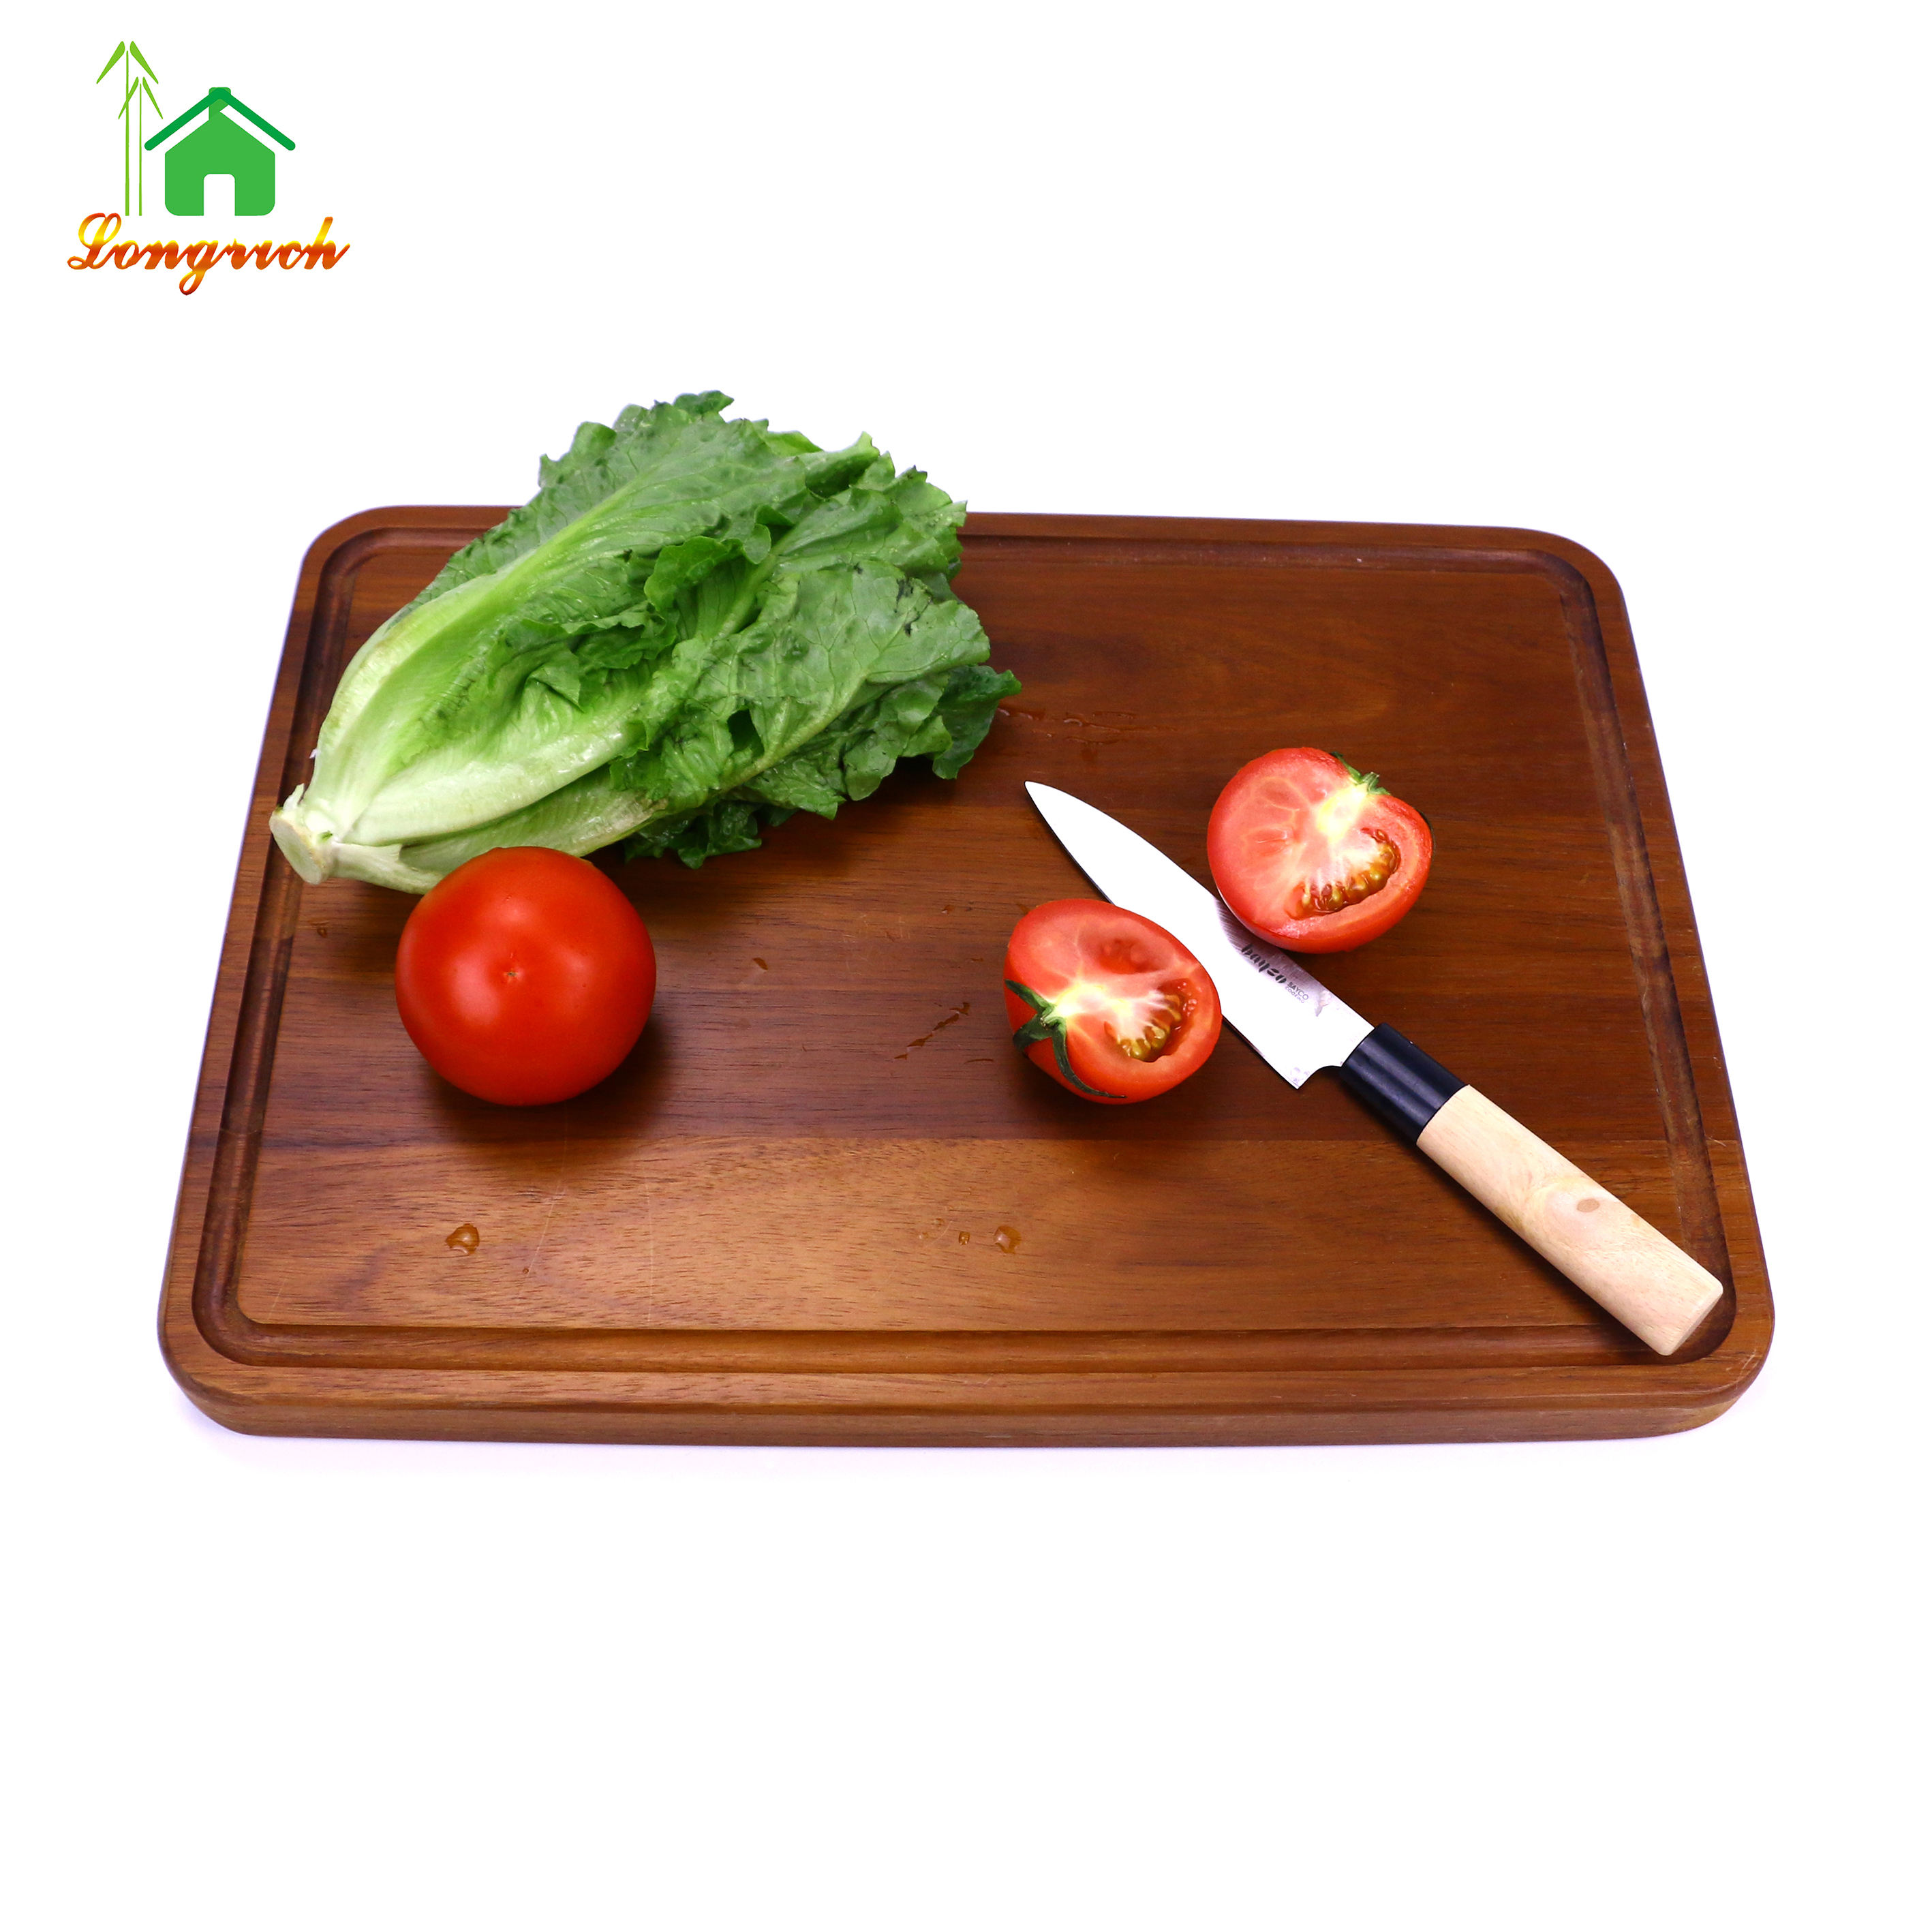 Large Walnut Wood Butcher Chopping Block Customized Cutting Board with Juice Drip Grooves and Handles